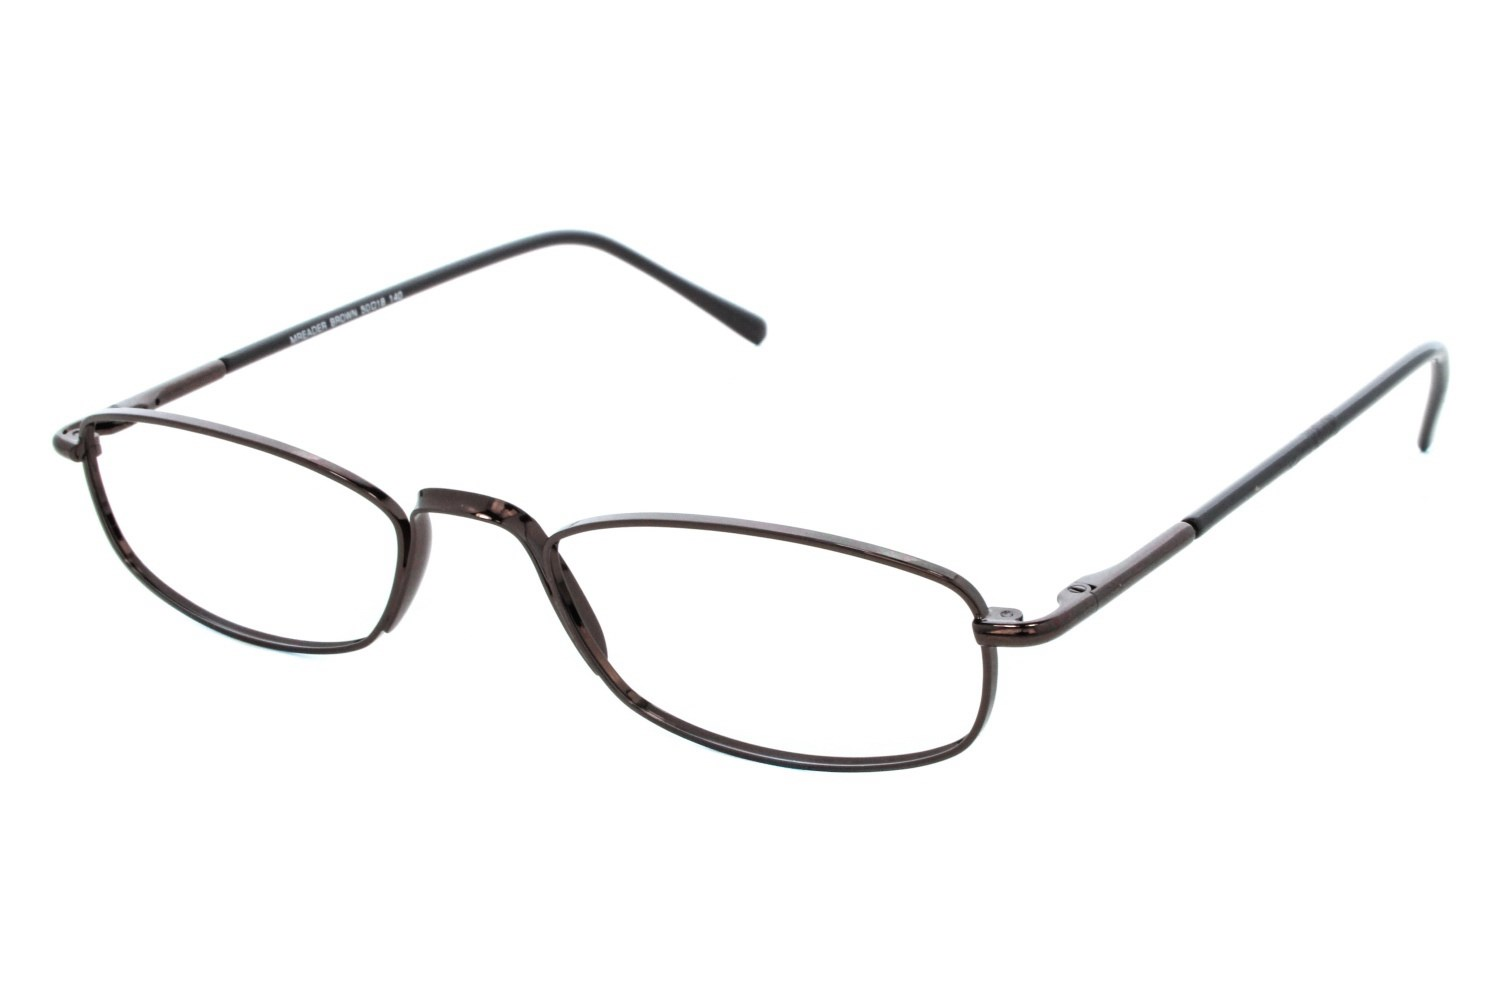 Heartland M Reader Prescription Eyeglasses Frames